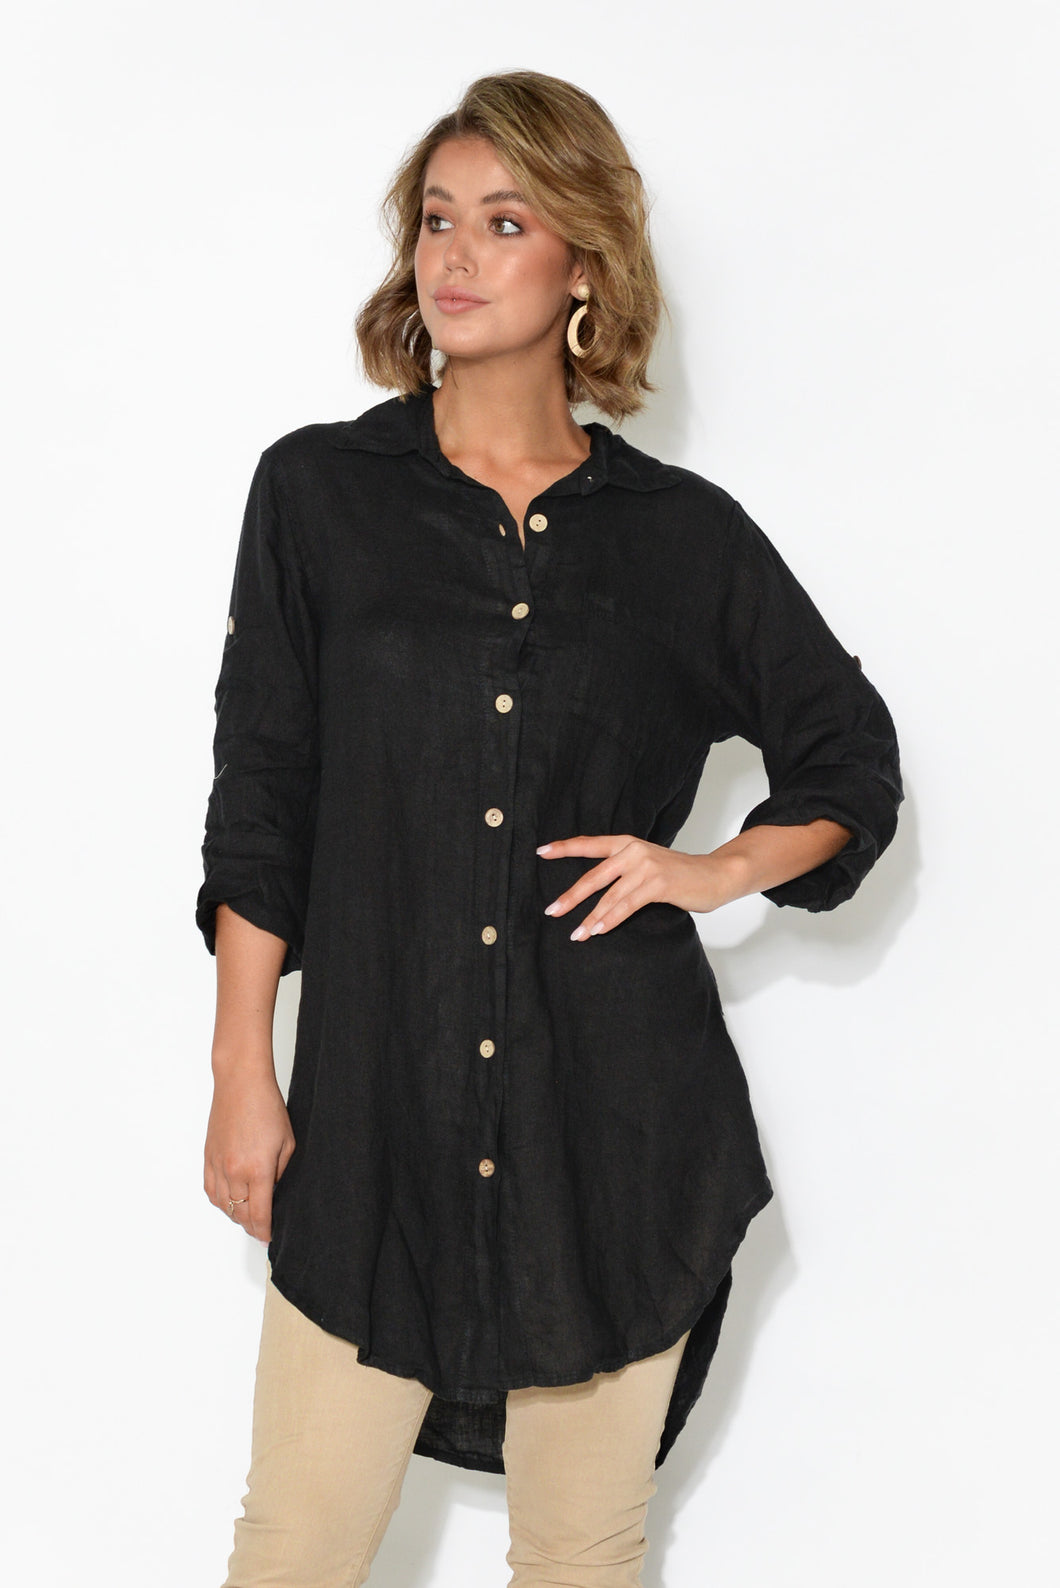 Joelle Black Linen Button Down Shirt